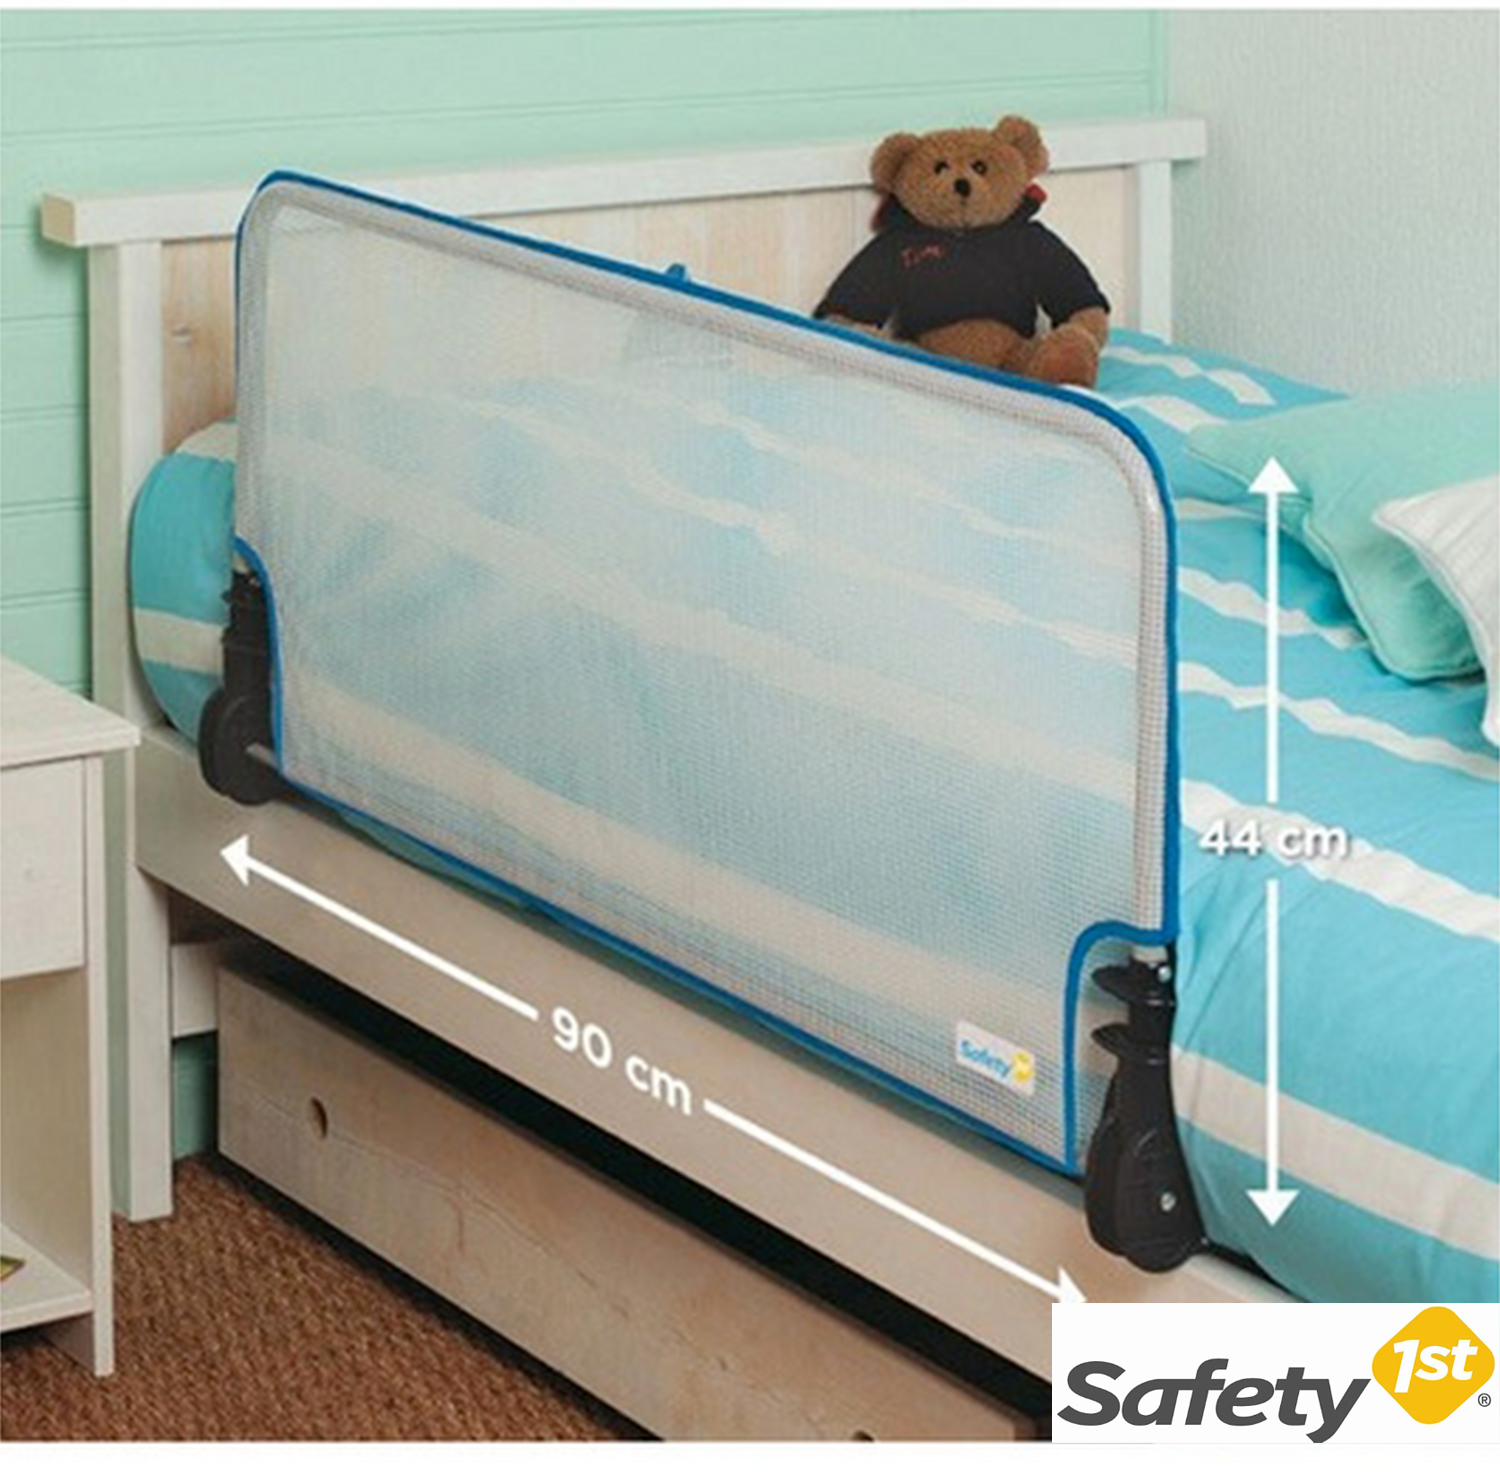 Safety first barriera per letto iperbimbo - Barriere letto bambini prenatal ...